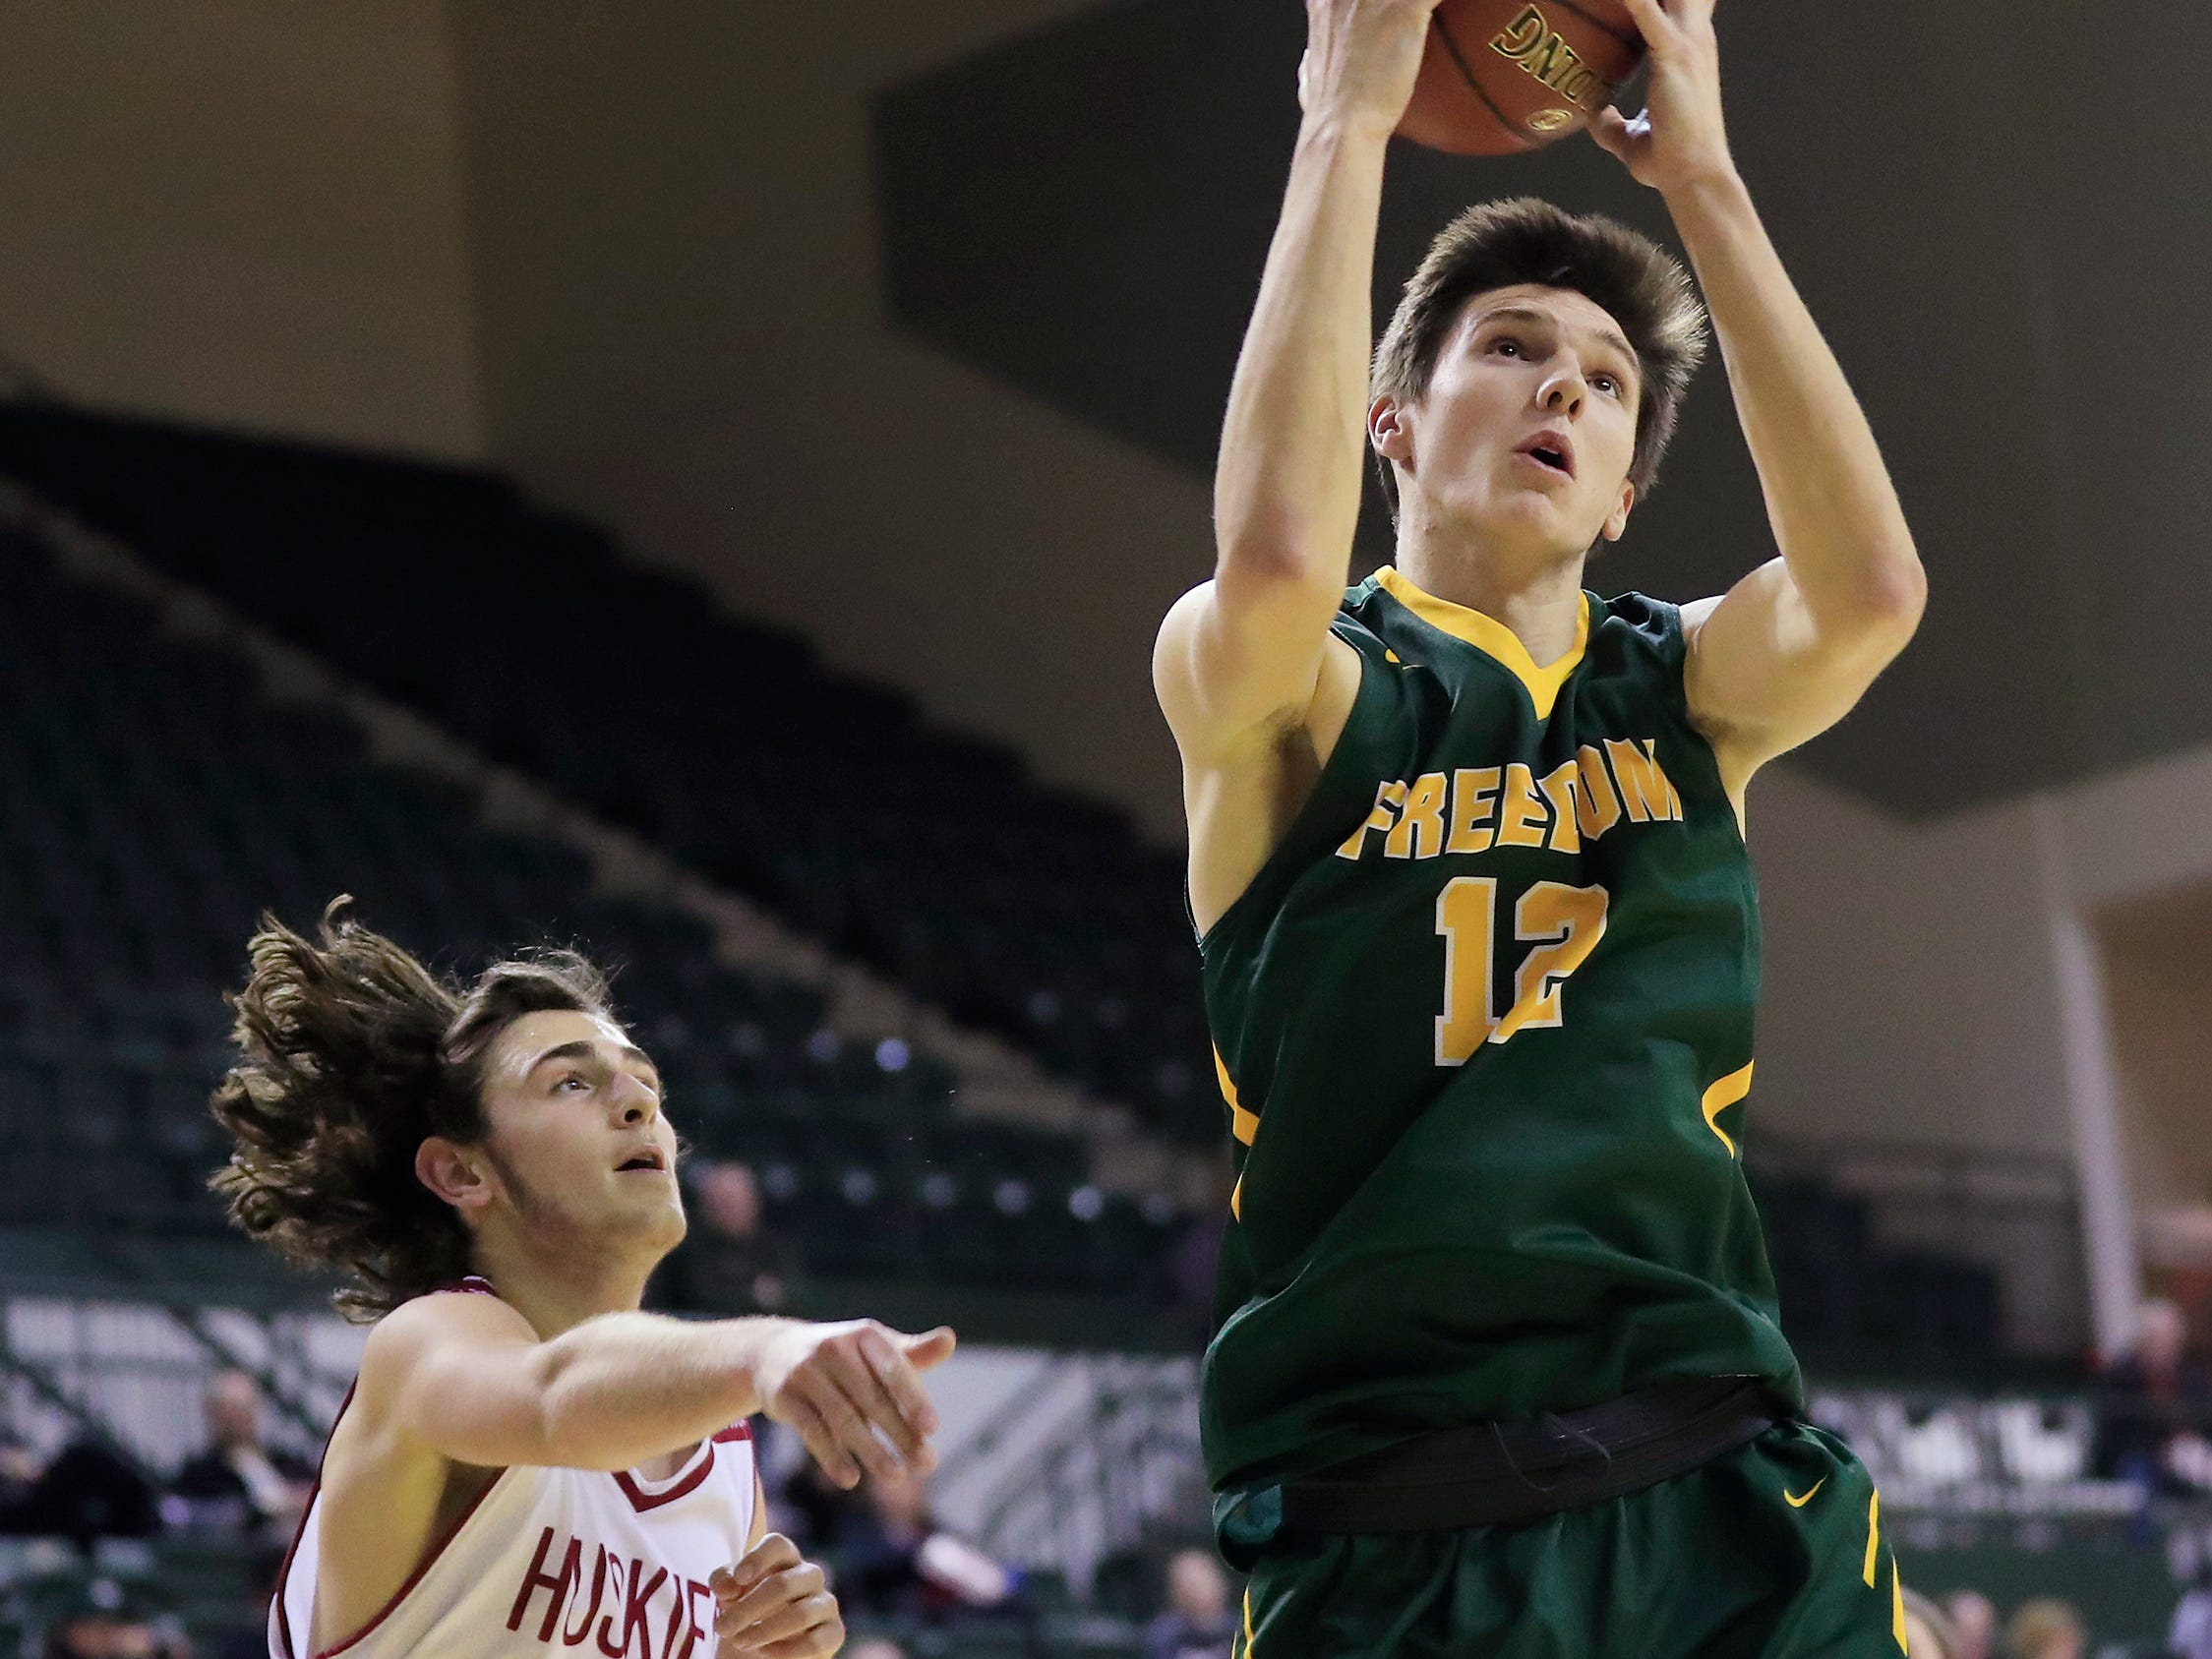 Freedom's Hunter Wiese (12) receives a ball in the paint against New Holstein's Owen Heus (21) at the Sun Drop Shootout at the Kress Center on Thursday, December 27, 2018 in Green Bay, Wis.